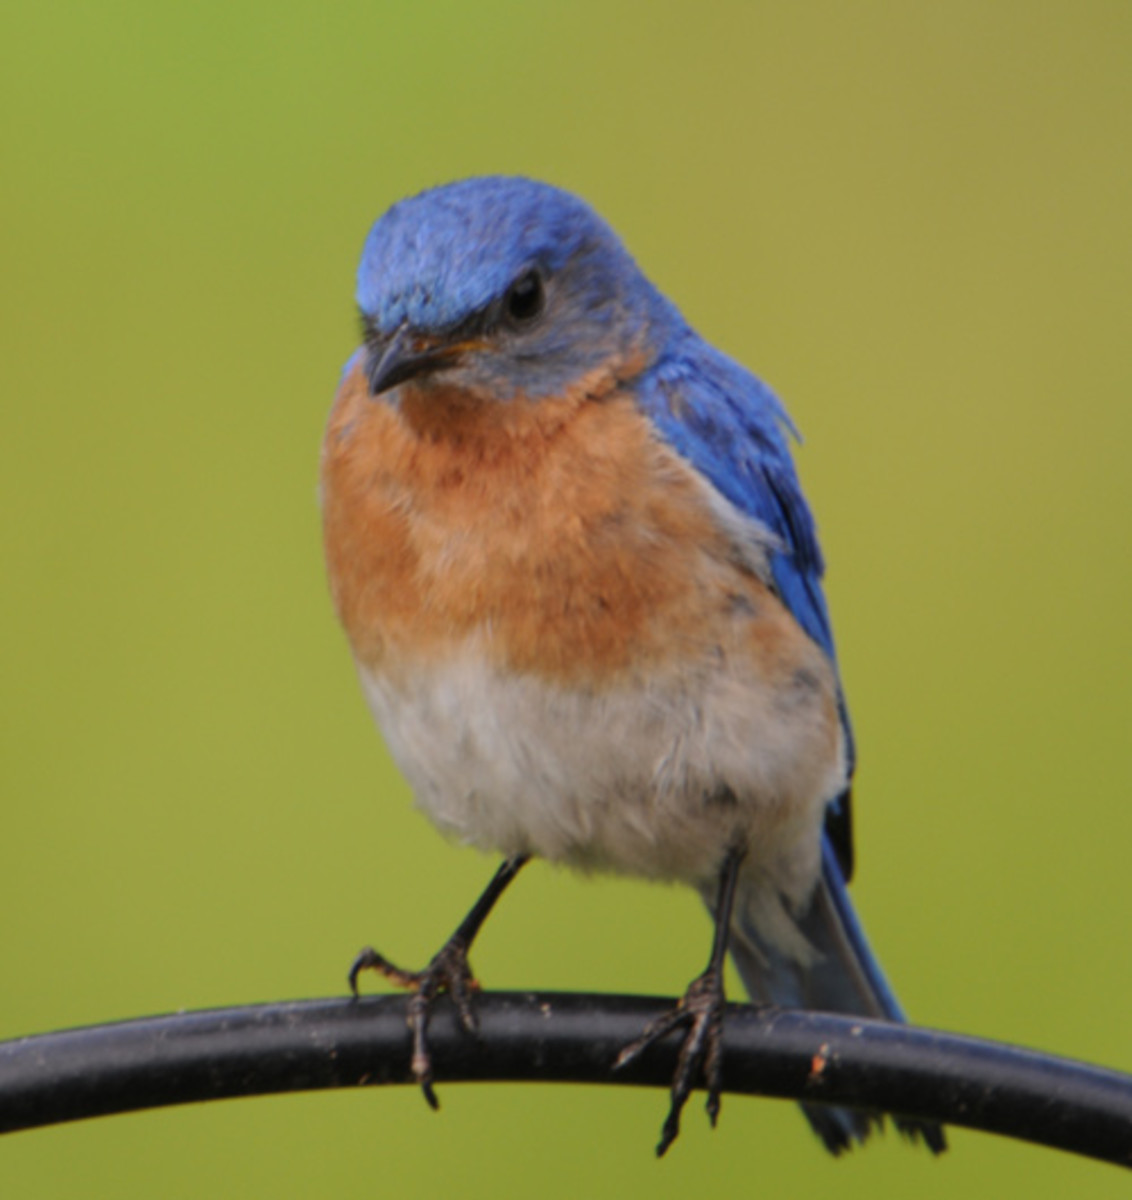 How to Attract Bluebirds: Tips For Offering the Right Foods, Plants and Nest Boxes